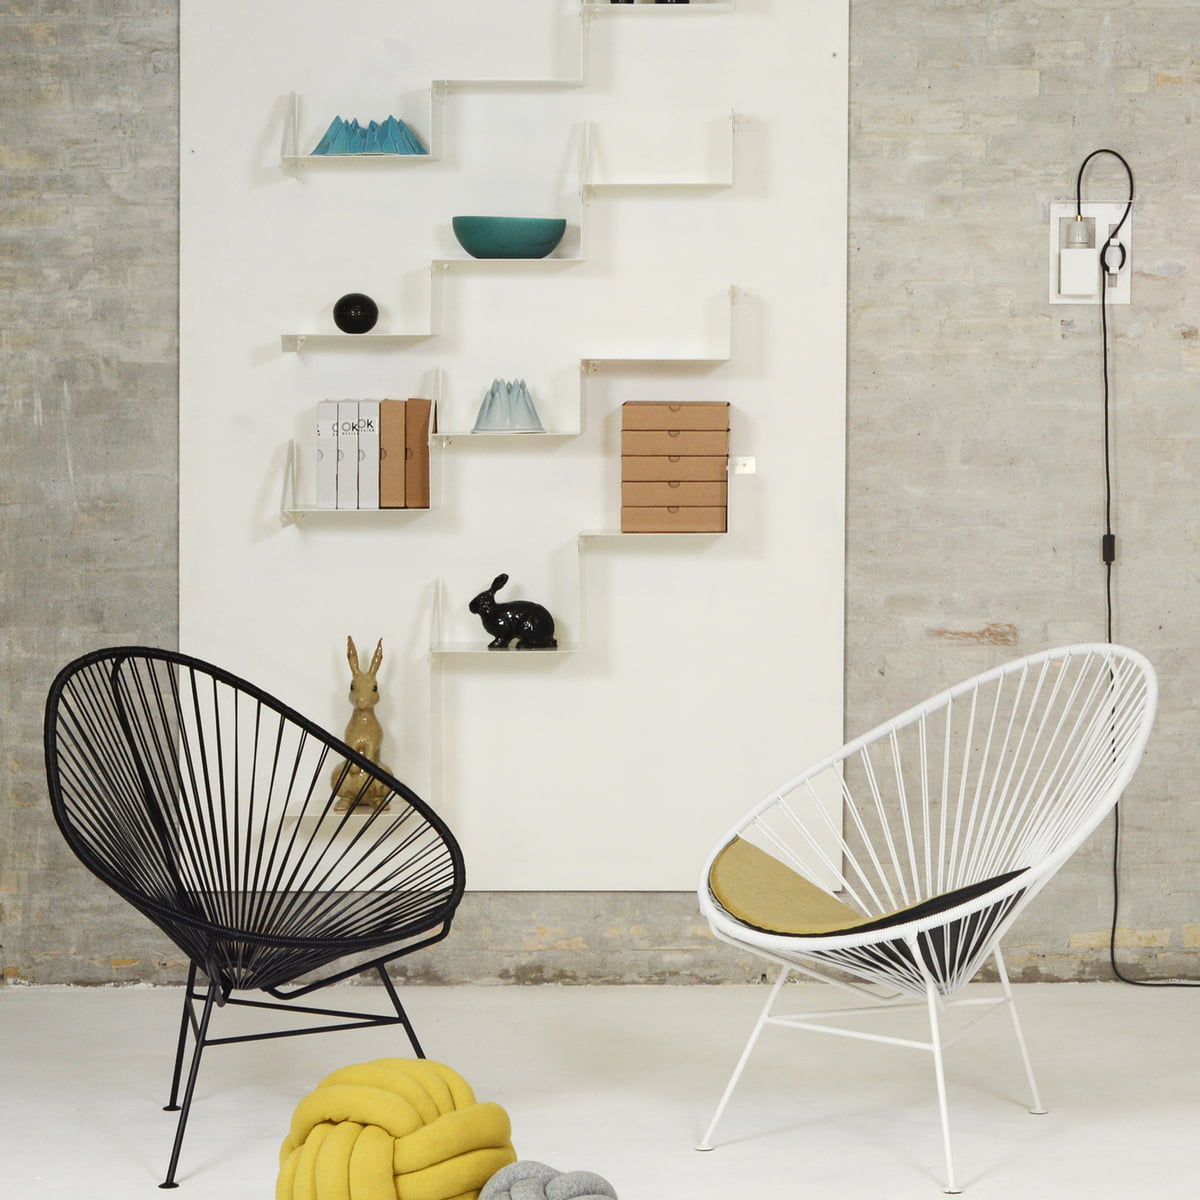 the ok design acapulco chair in the shop